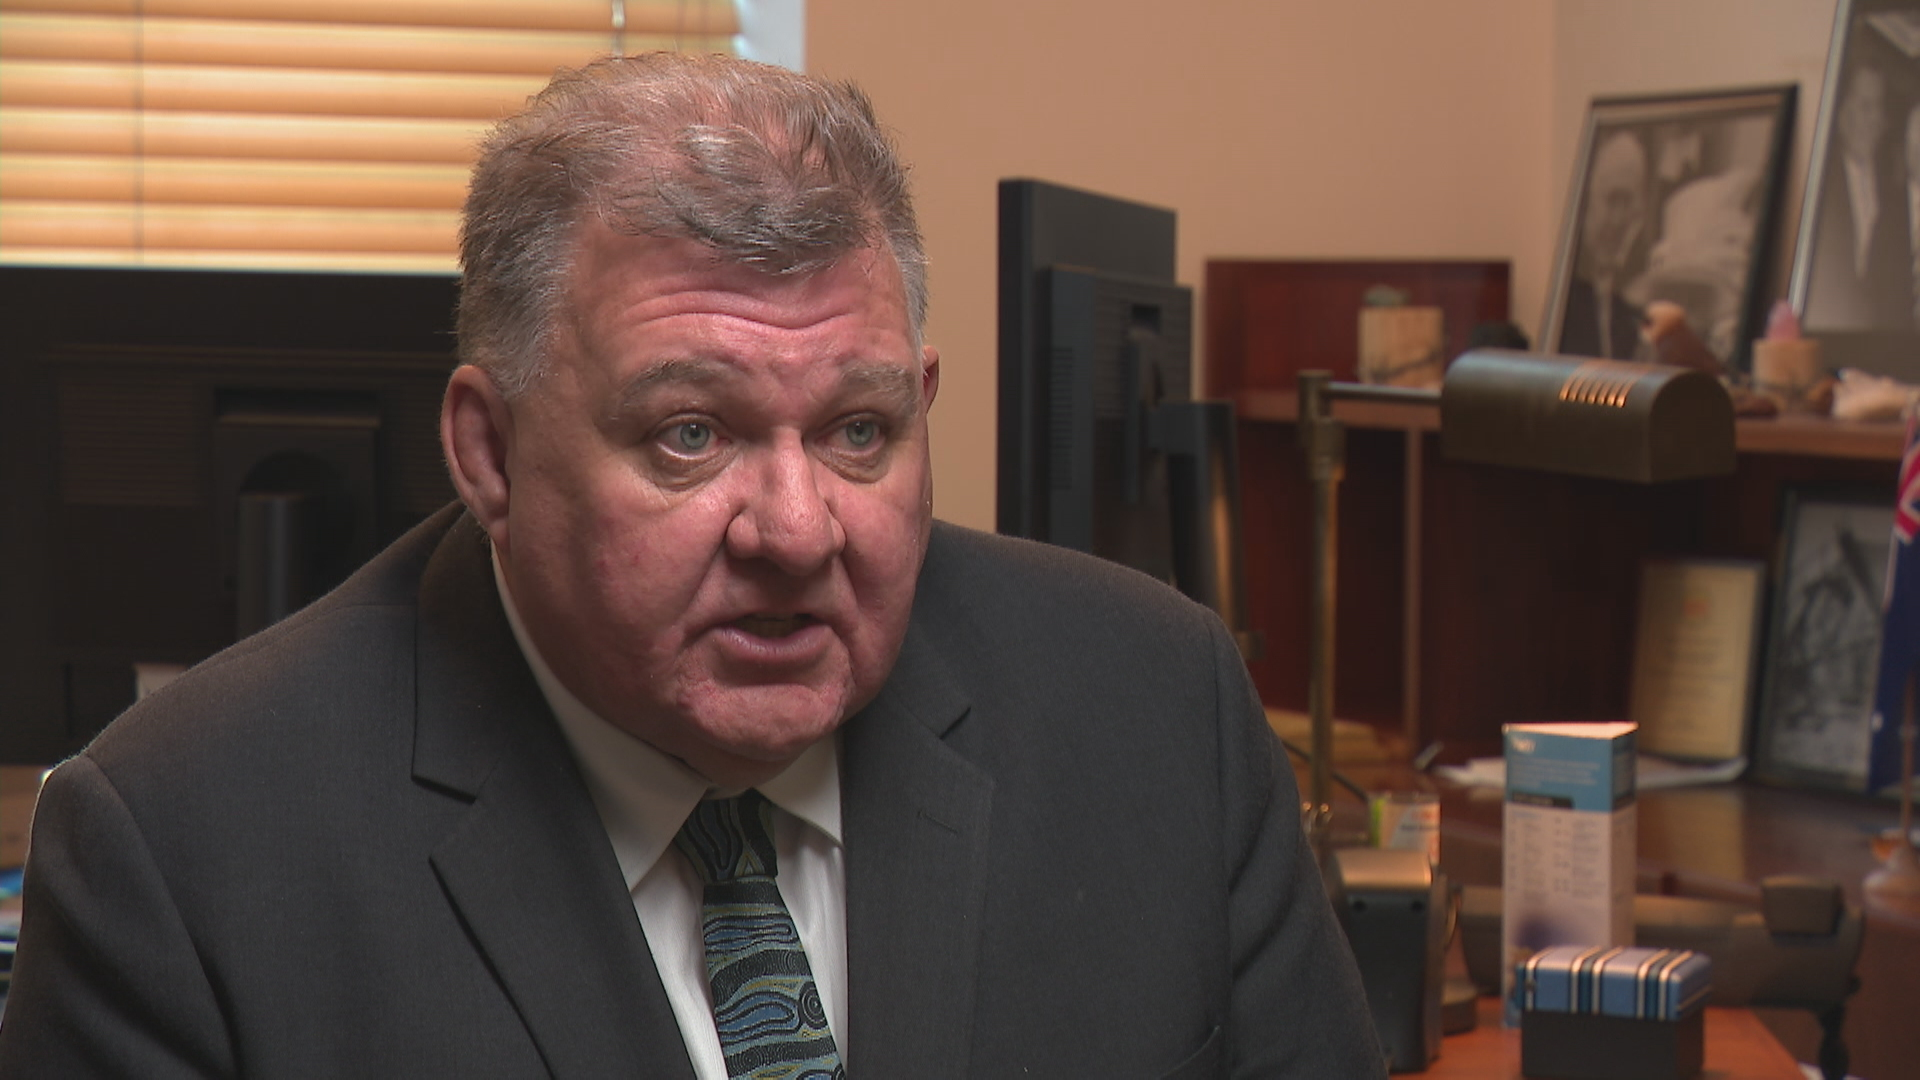 Craig Kelly says he will run independently after quitting Liberal Party